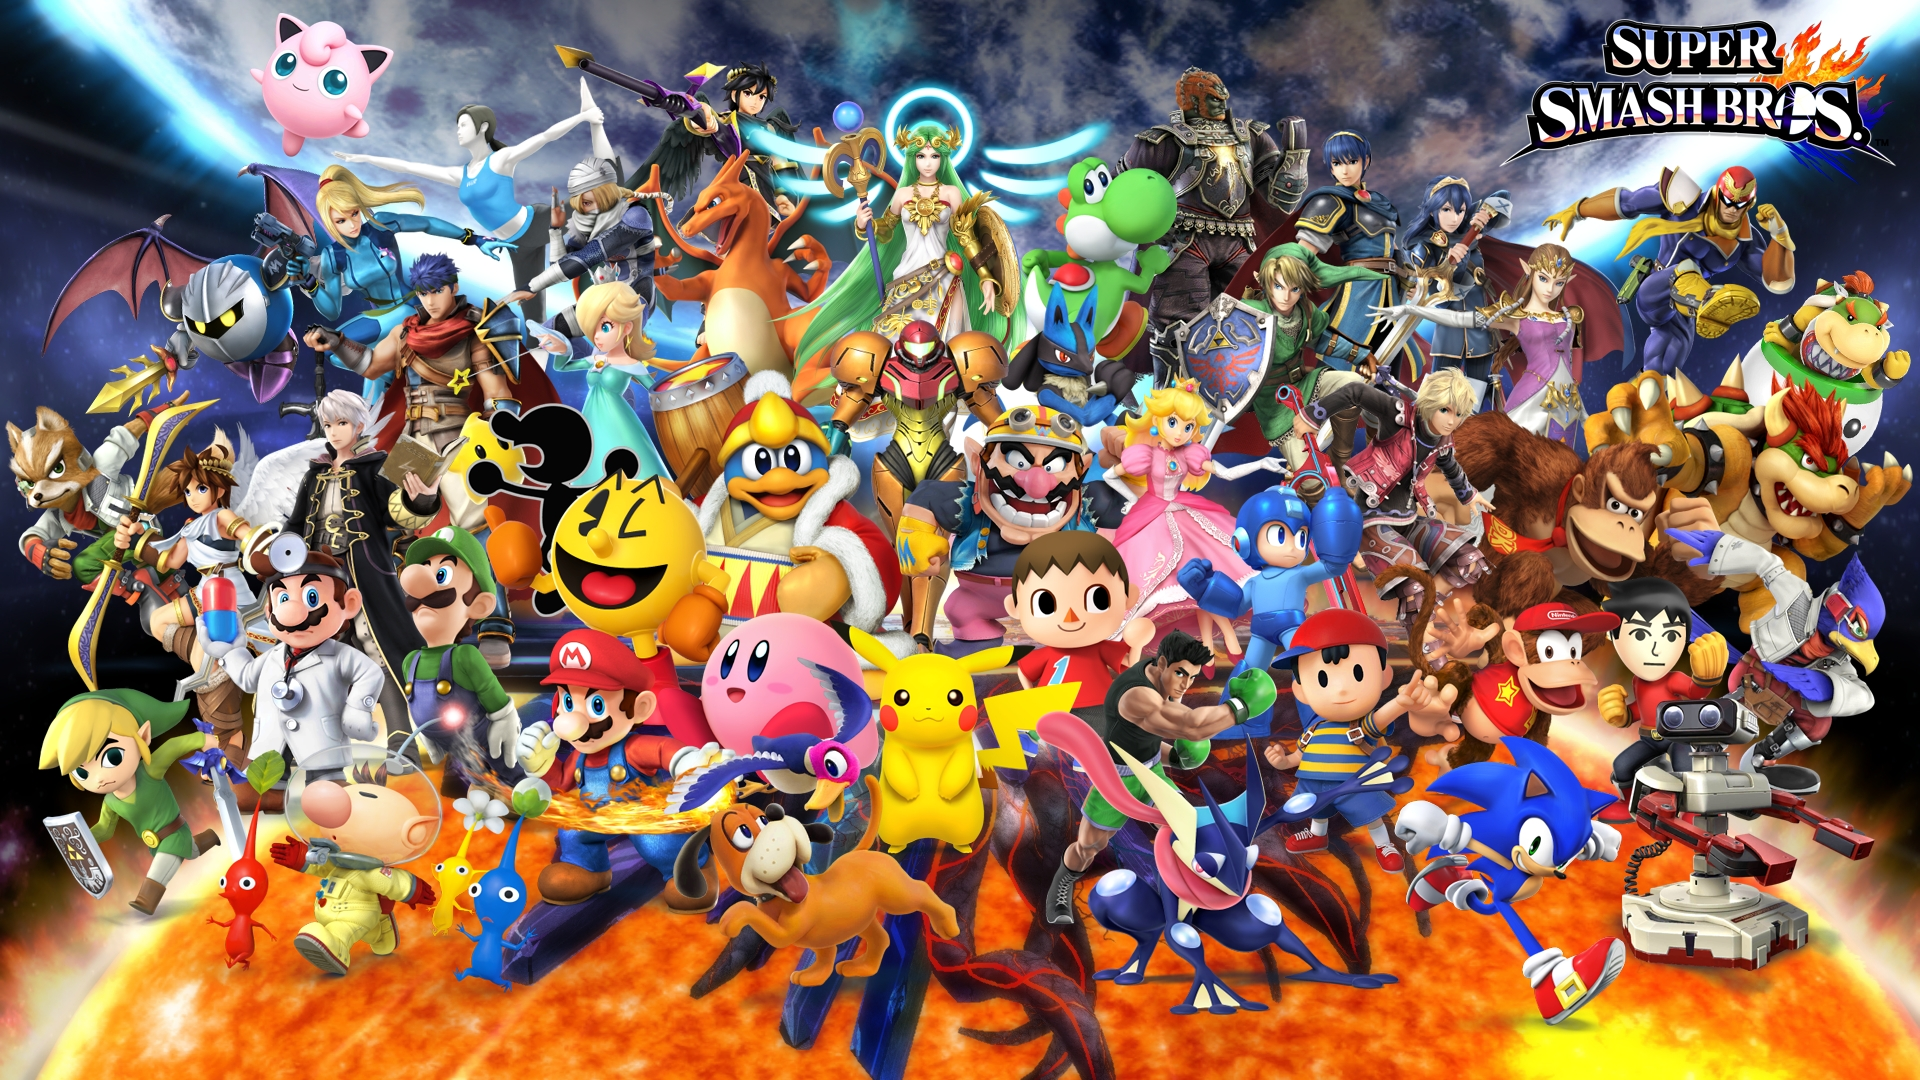 super smash bros wallpaper hd - wallpapersafari | wallpapers | pinterest